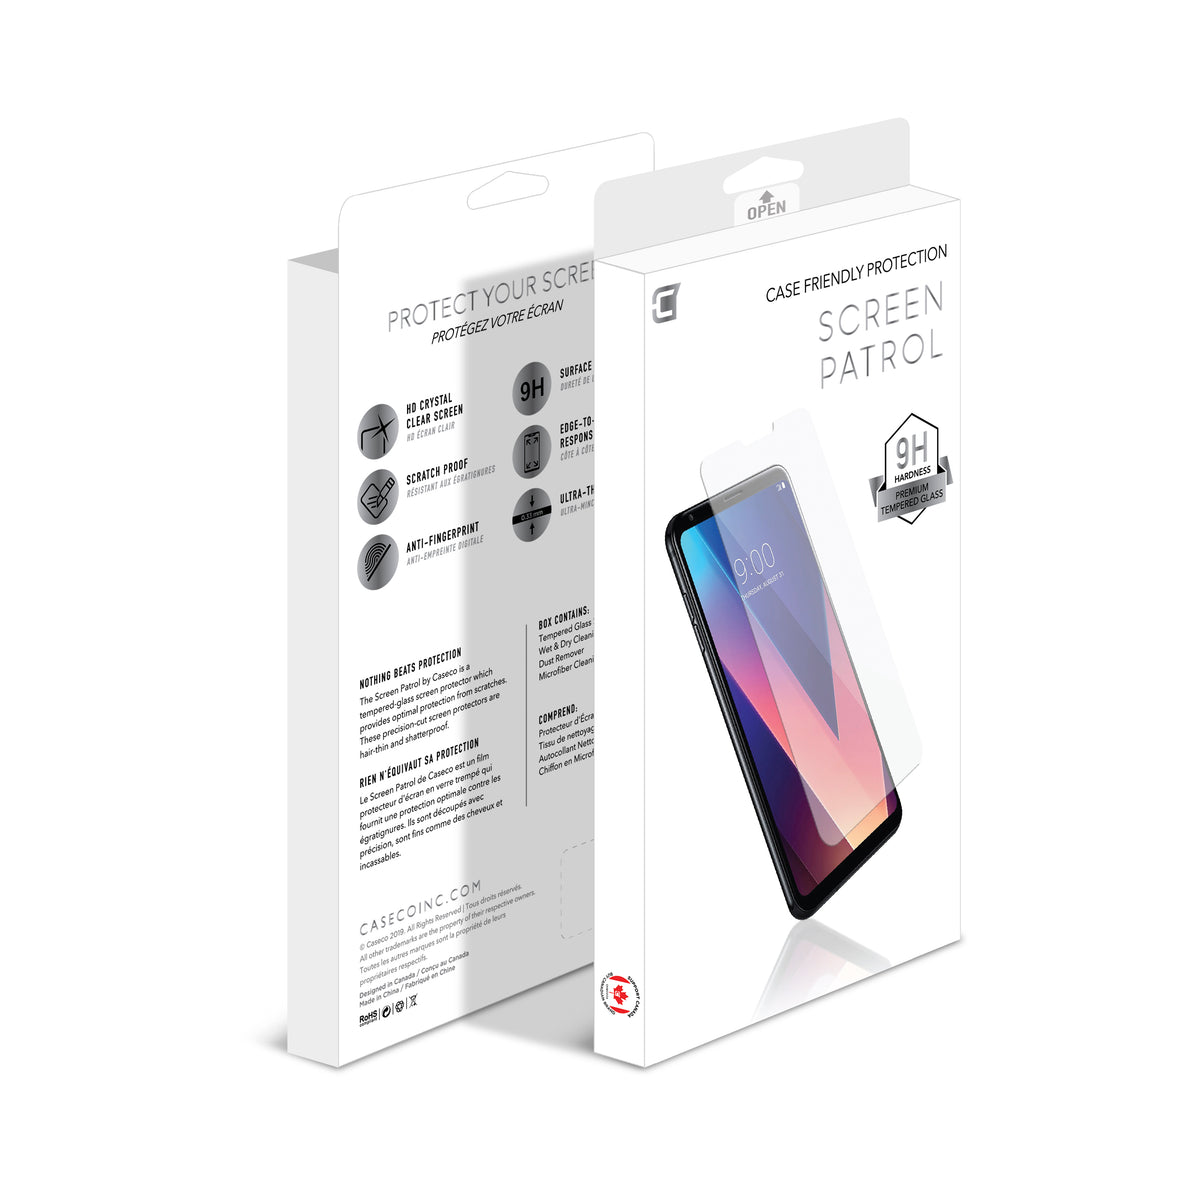 Screen Patrol - Tempered Glass - Samsung X Cover 4